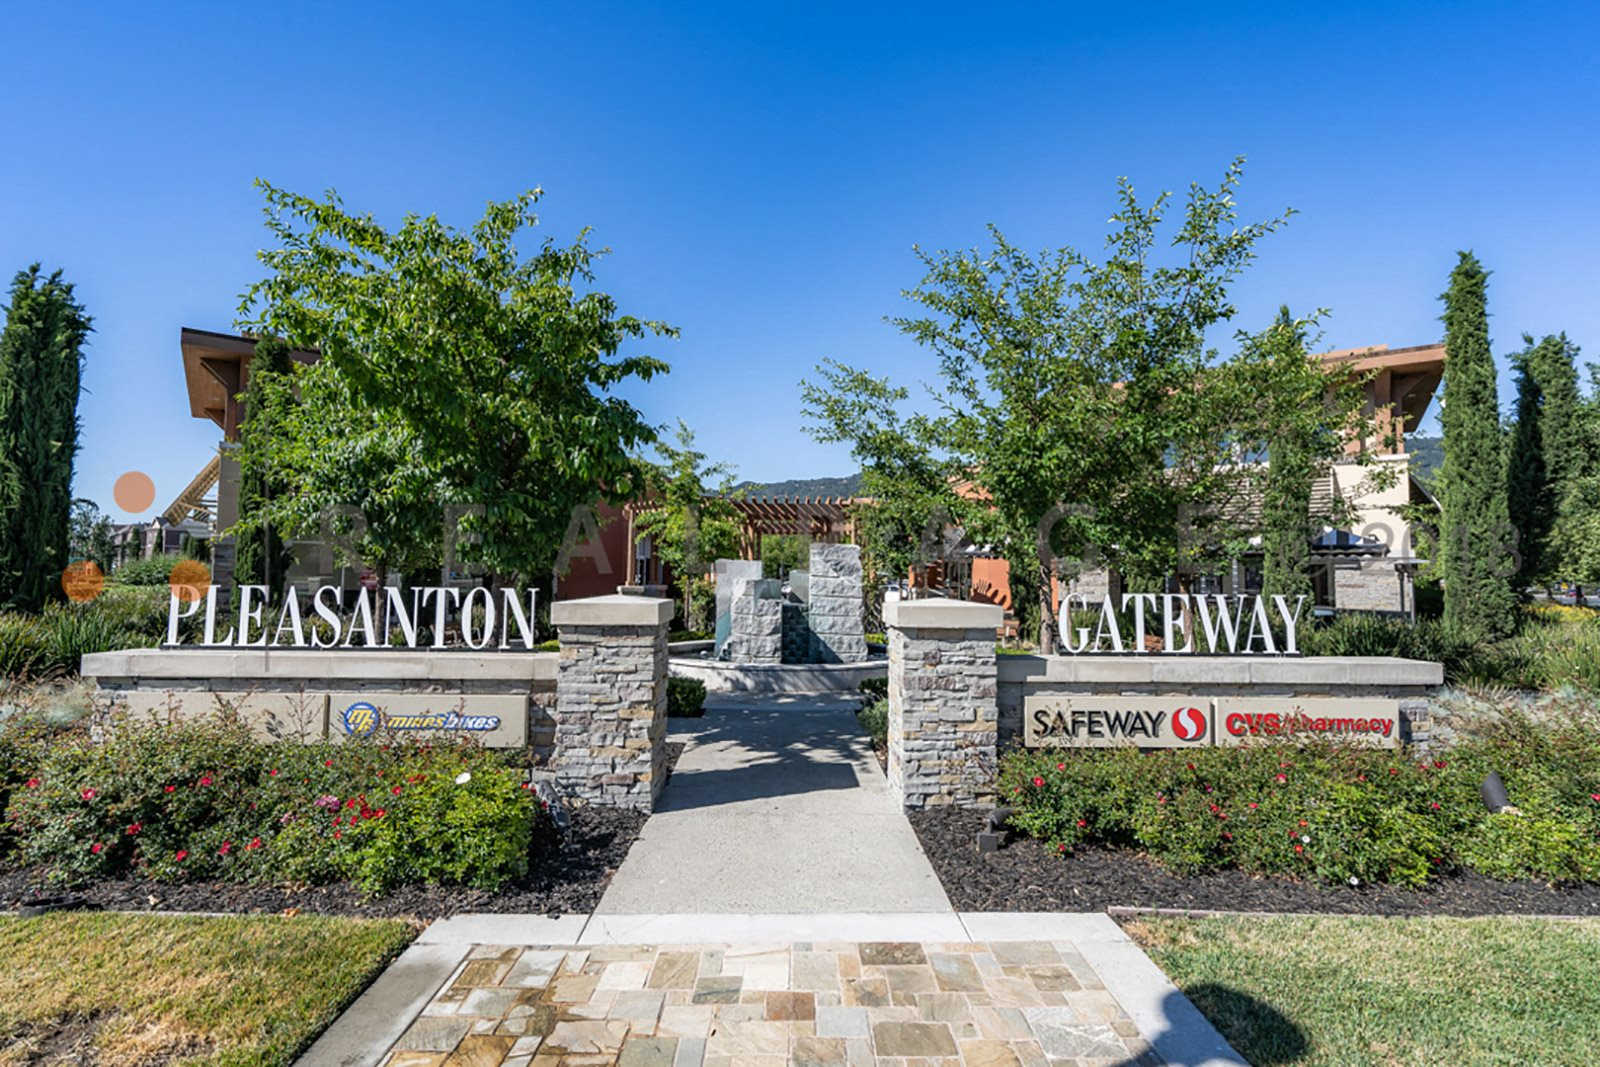 Close to Pleasanton Gateway Shopping Center at The Kensington, California, 94566